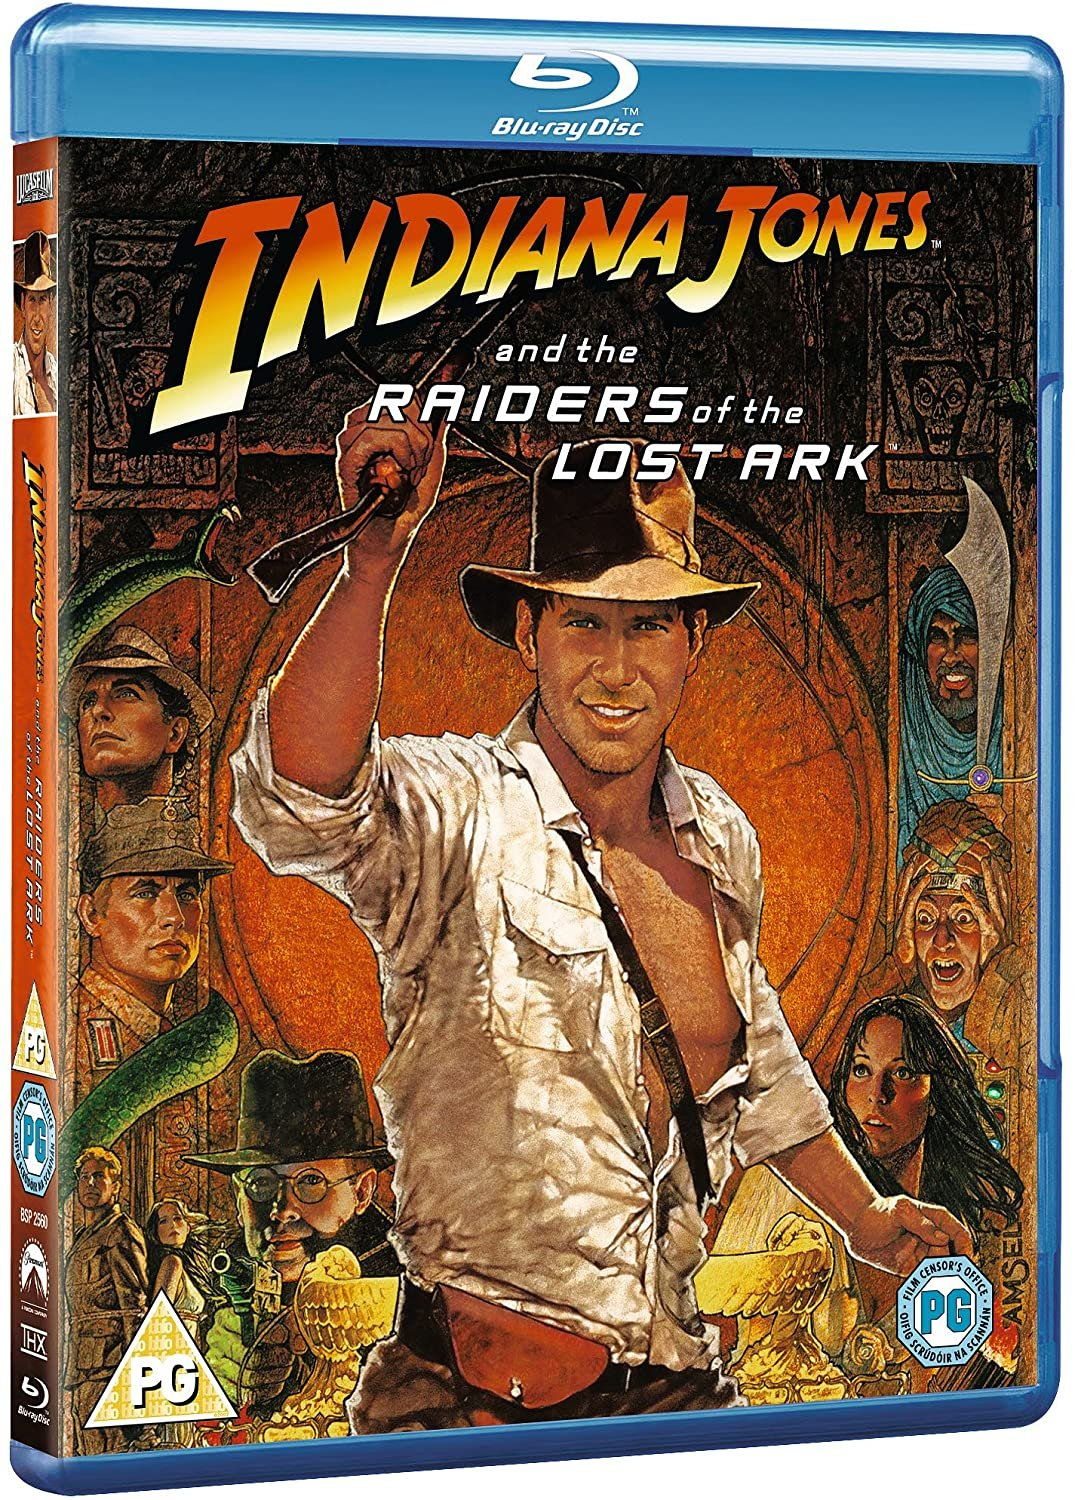 Raiders of the Lost Ark poster image